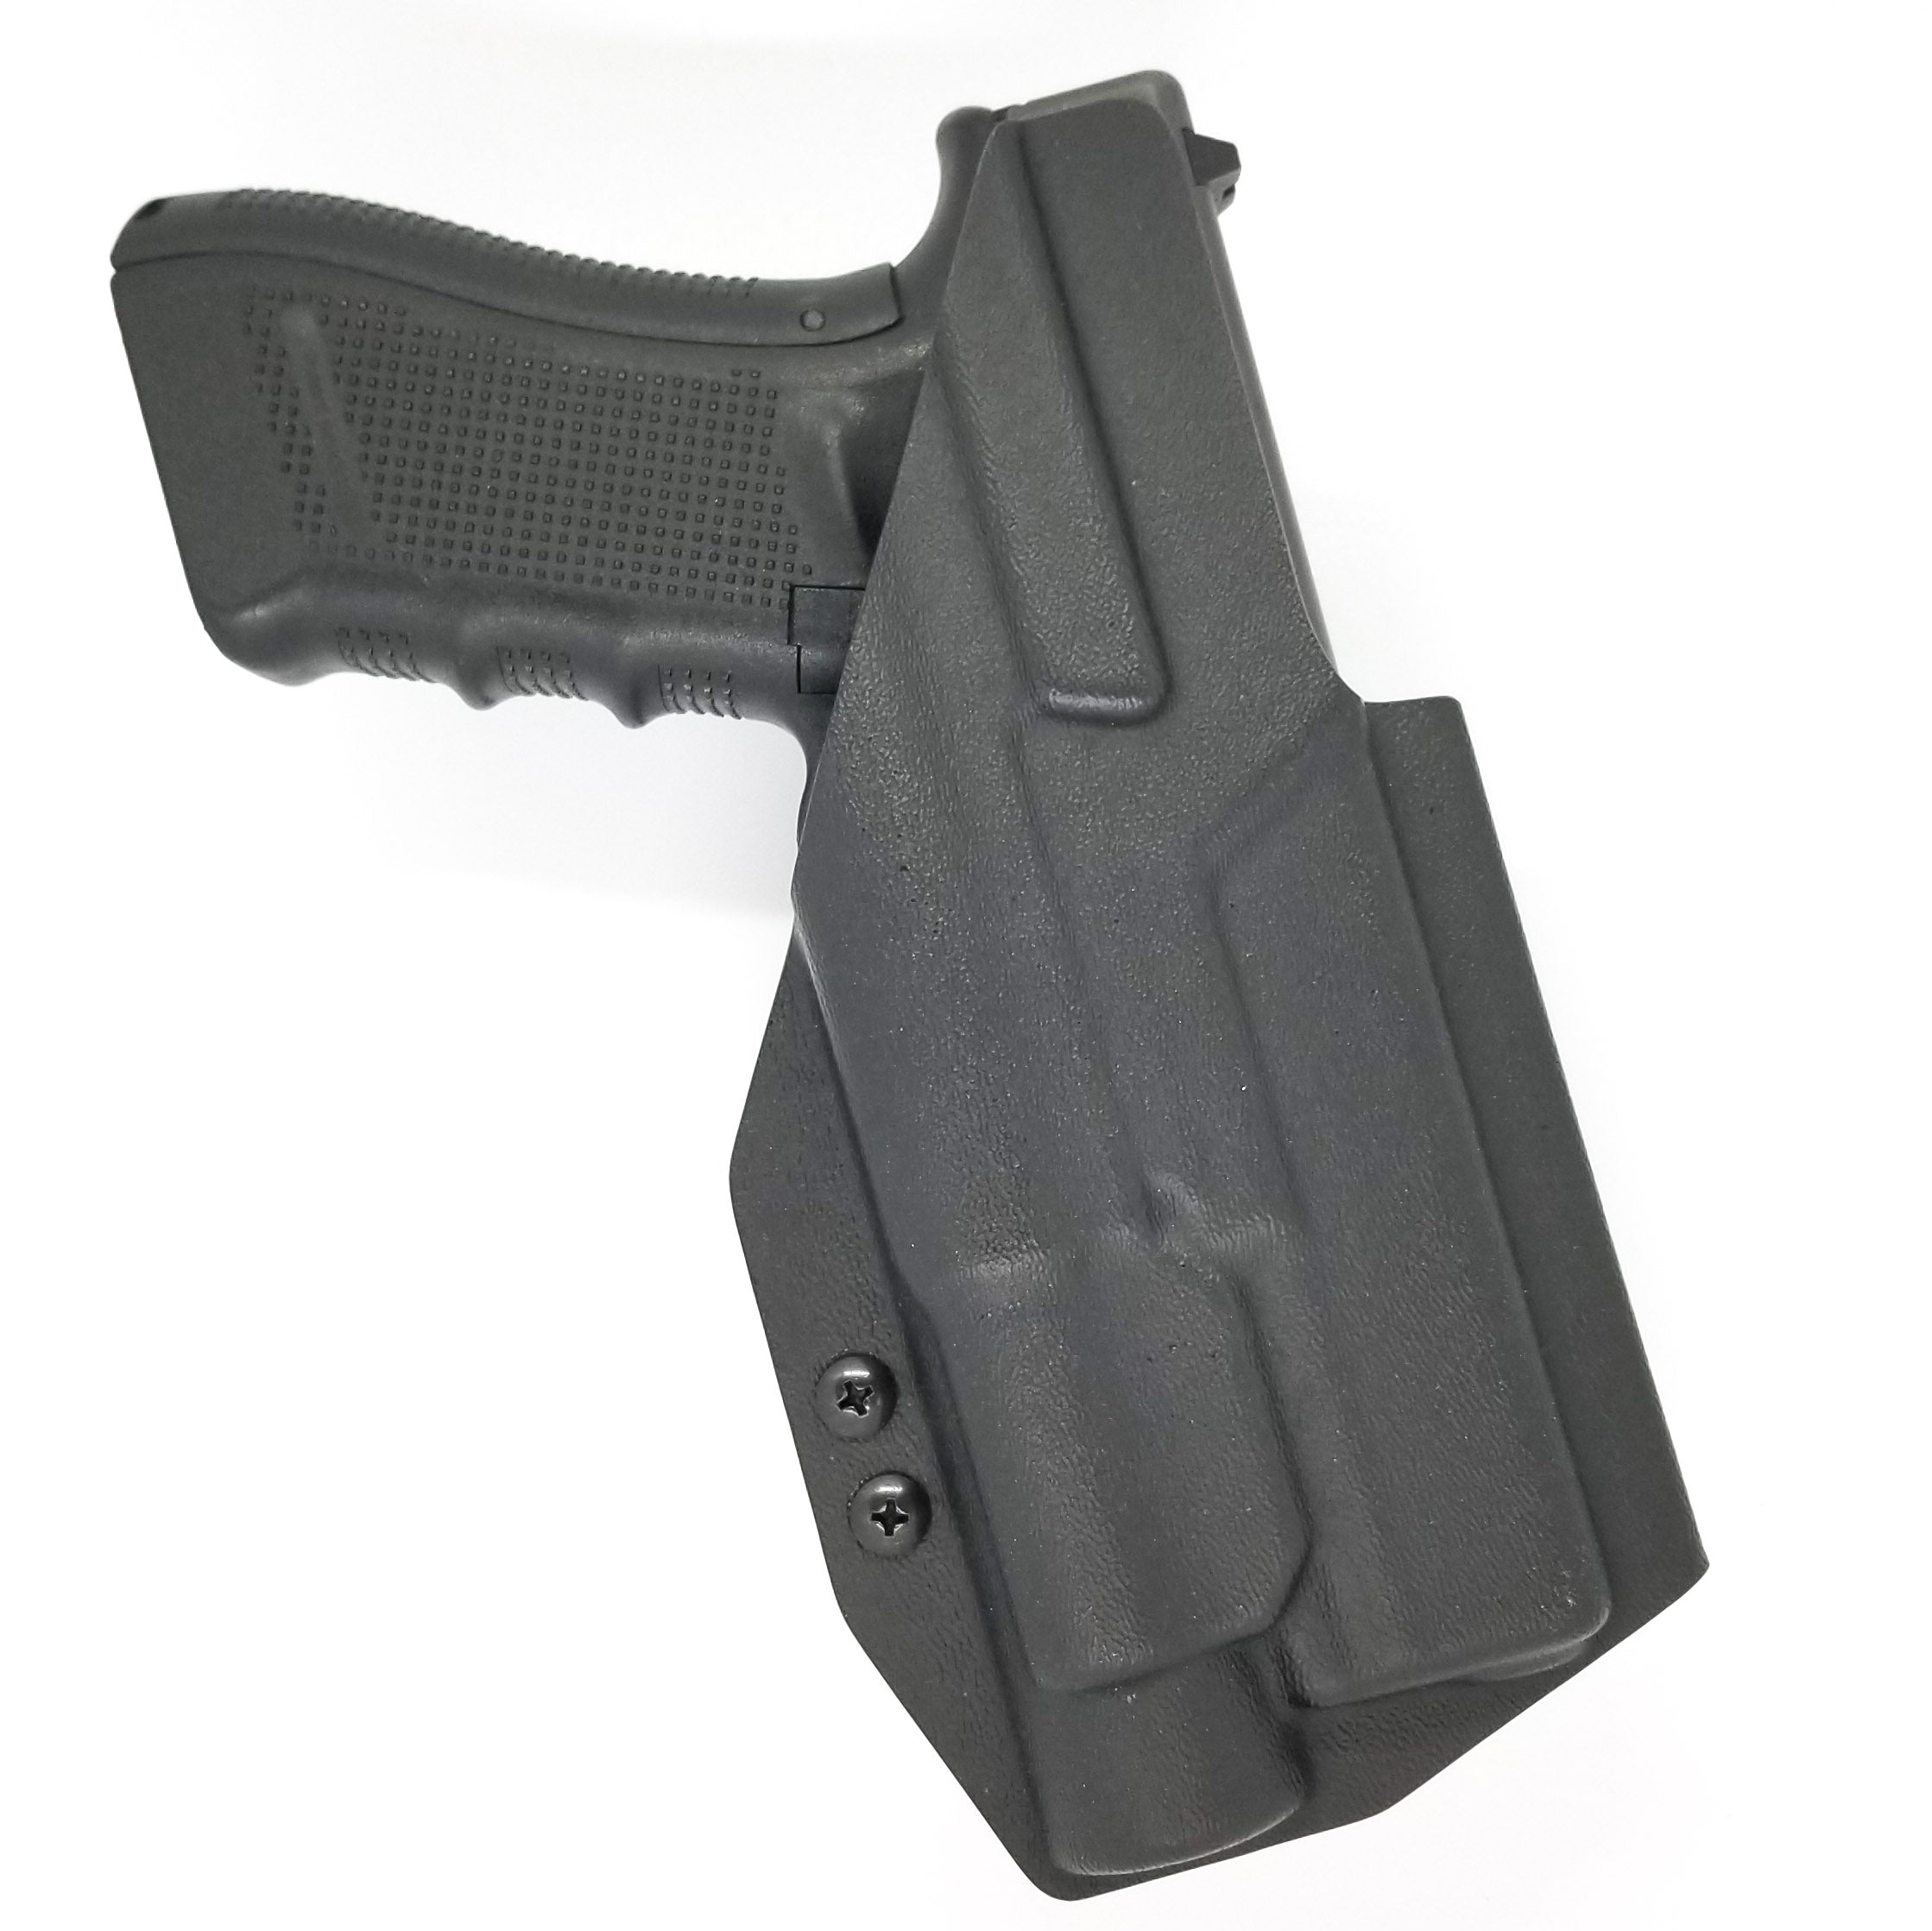 Glock 17/19 with TLR-1 OWB Holster